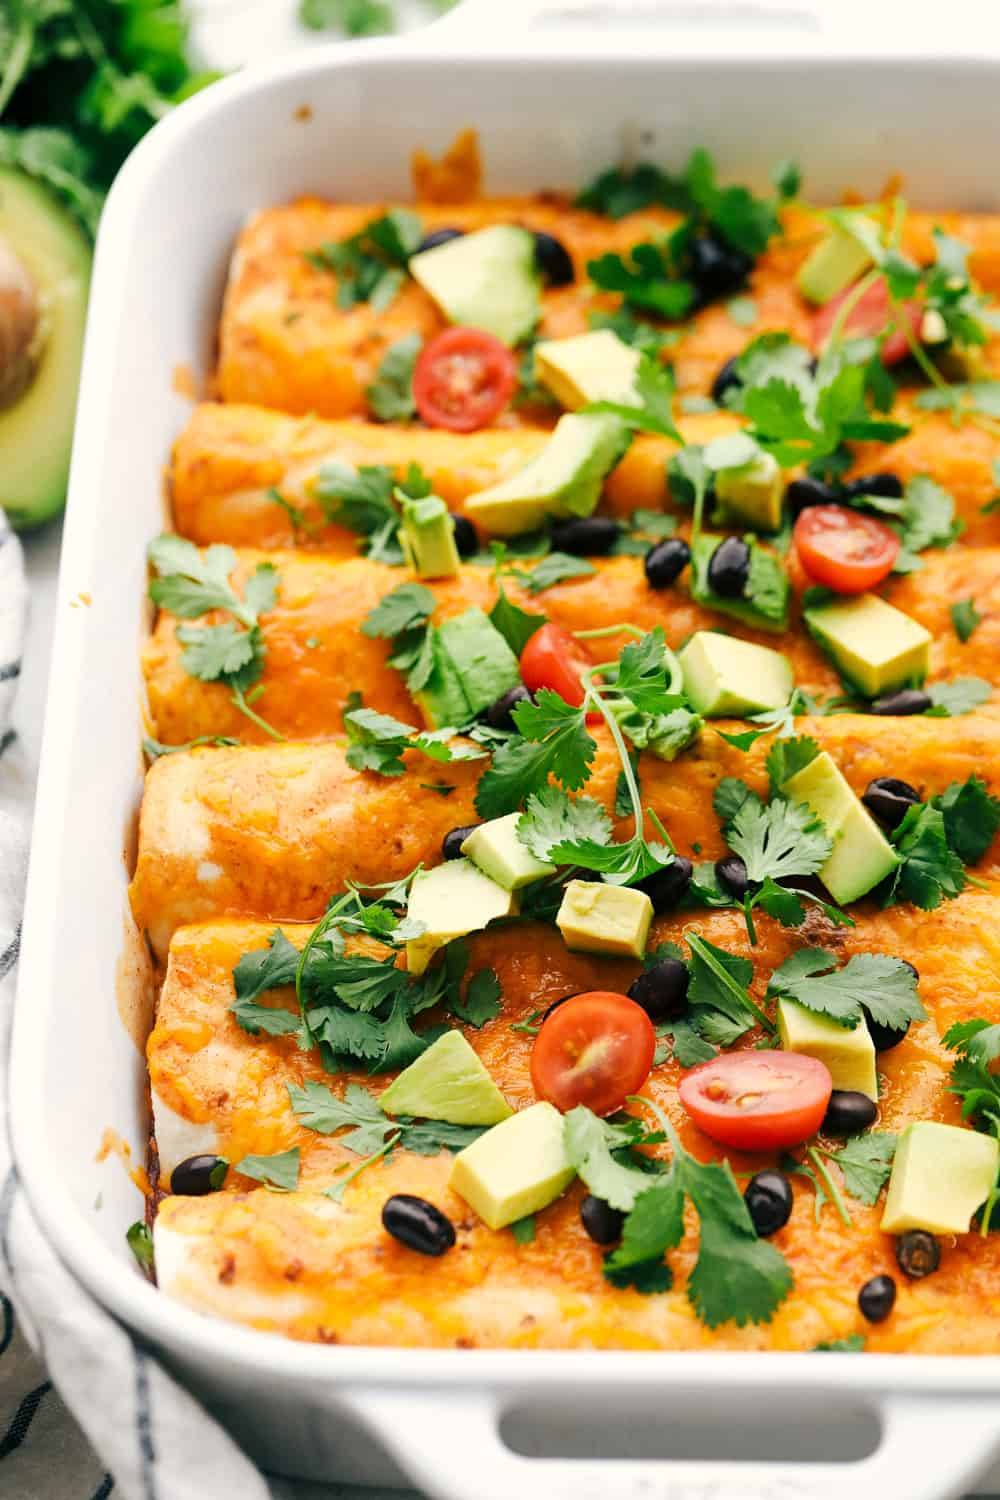 Sweet potato and black bean enchiladas cooked in a white dish with avocado and tomatoes.